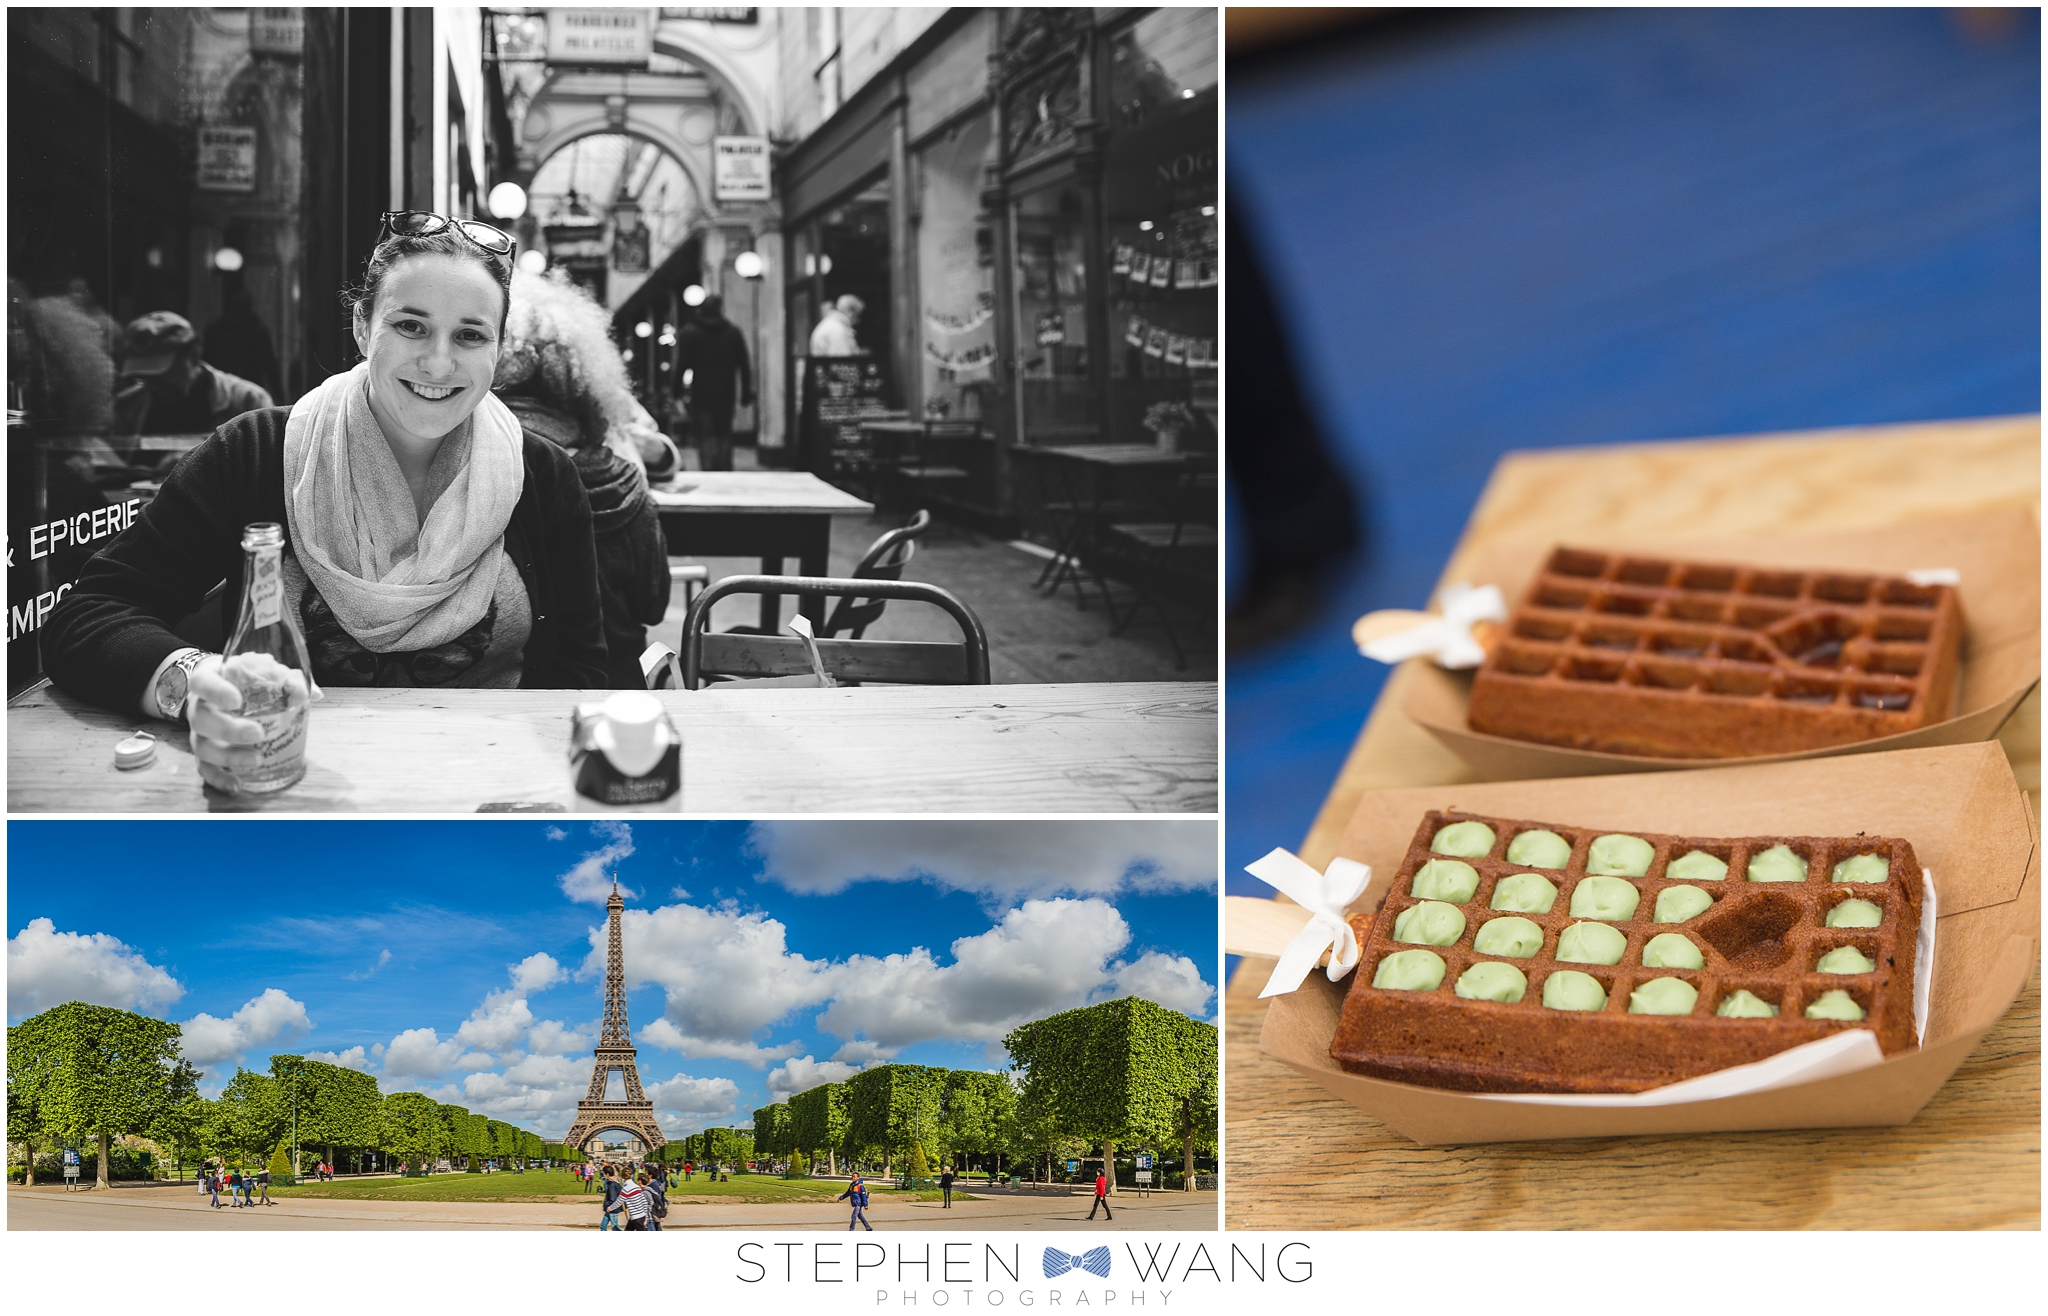 Wandering around Paris - the cafes, parks, and restaurants were all so much fun.  We ended up not going to the top of the Eiffel Tower, as the line was quite long.  But waffles with pistachio cream...yes please!